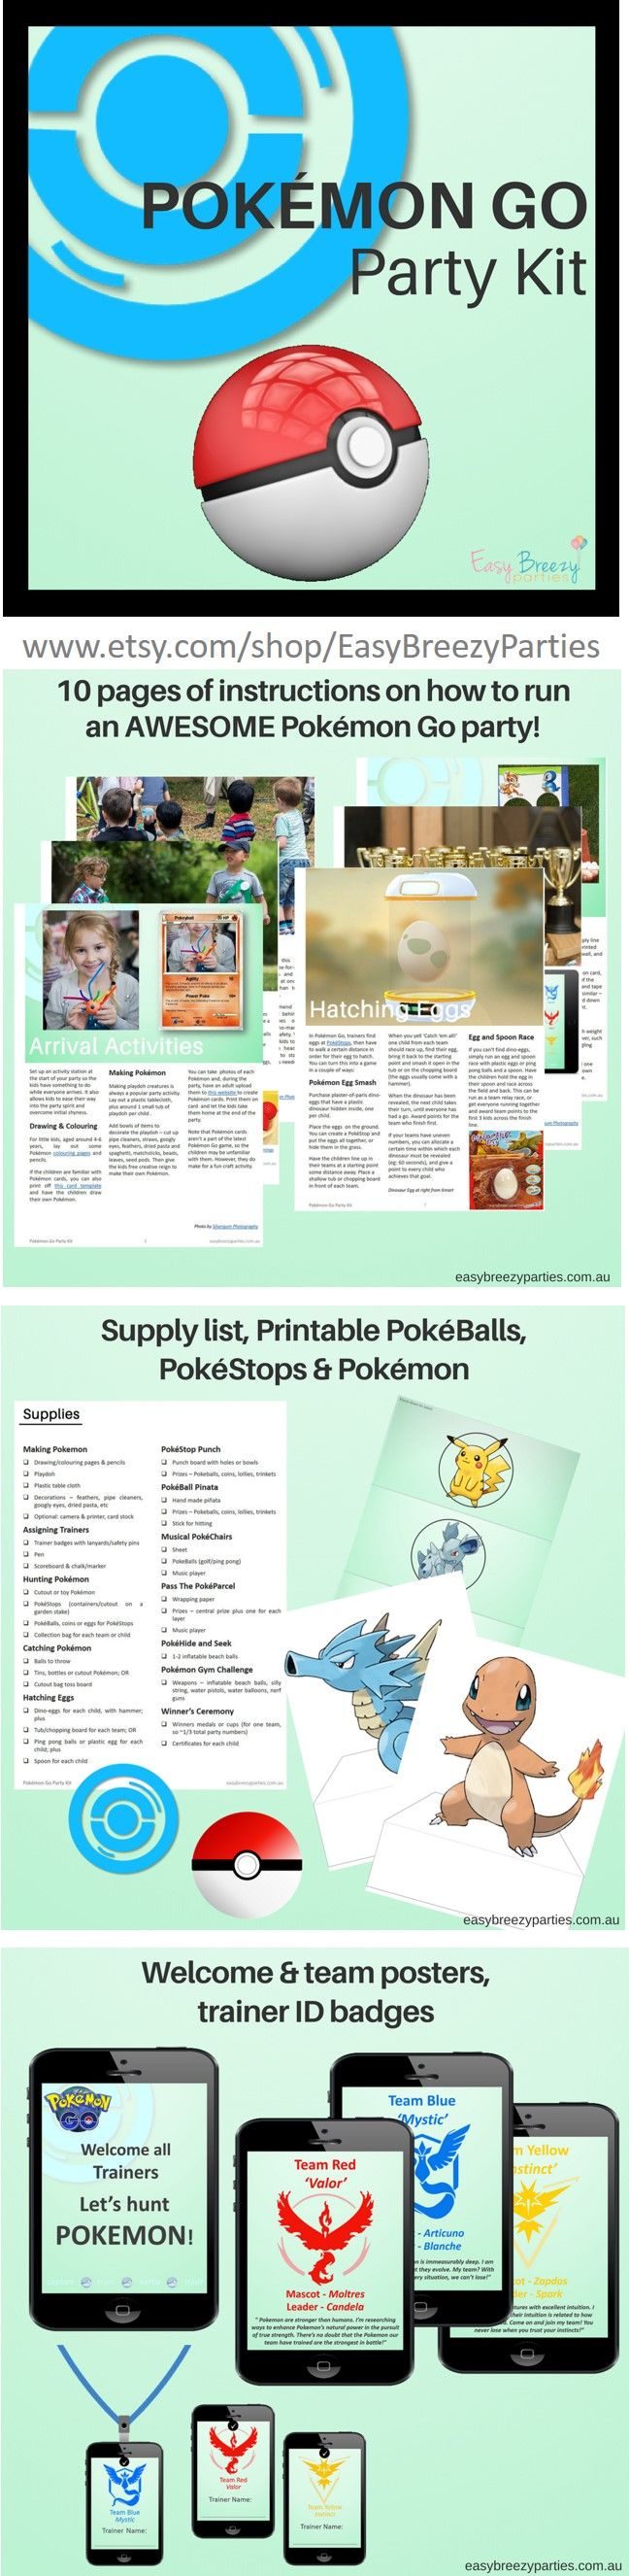 Pokemon Go party kit - loads of fun, energetic activities, with complete instructions for your Pokemon Go party. Includes printables. Download from https://www.etsy.com/listing/470978193/pokemon-go-party-kit-detailed-activity?ref=listing-shop-header-1 #easybreezyparties #pokemongo